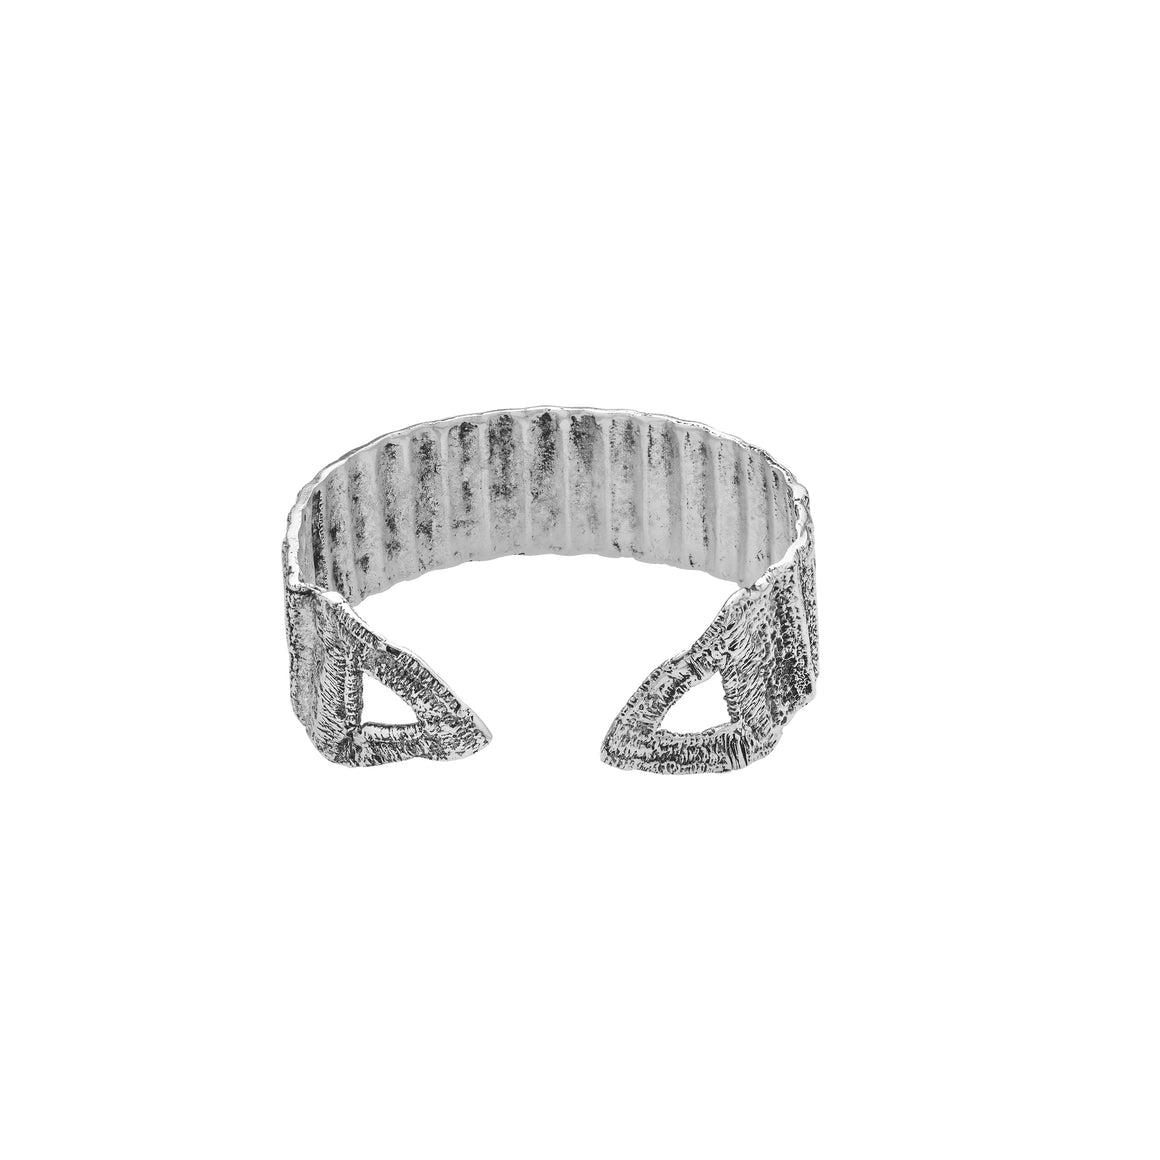 Tri Ribbon Bracelet-silver antique-designed by alexandra koumba